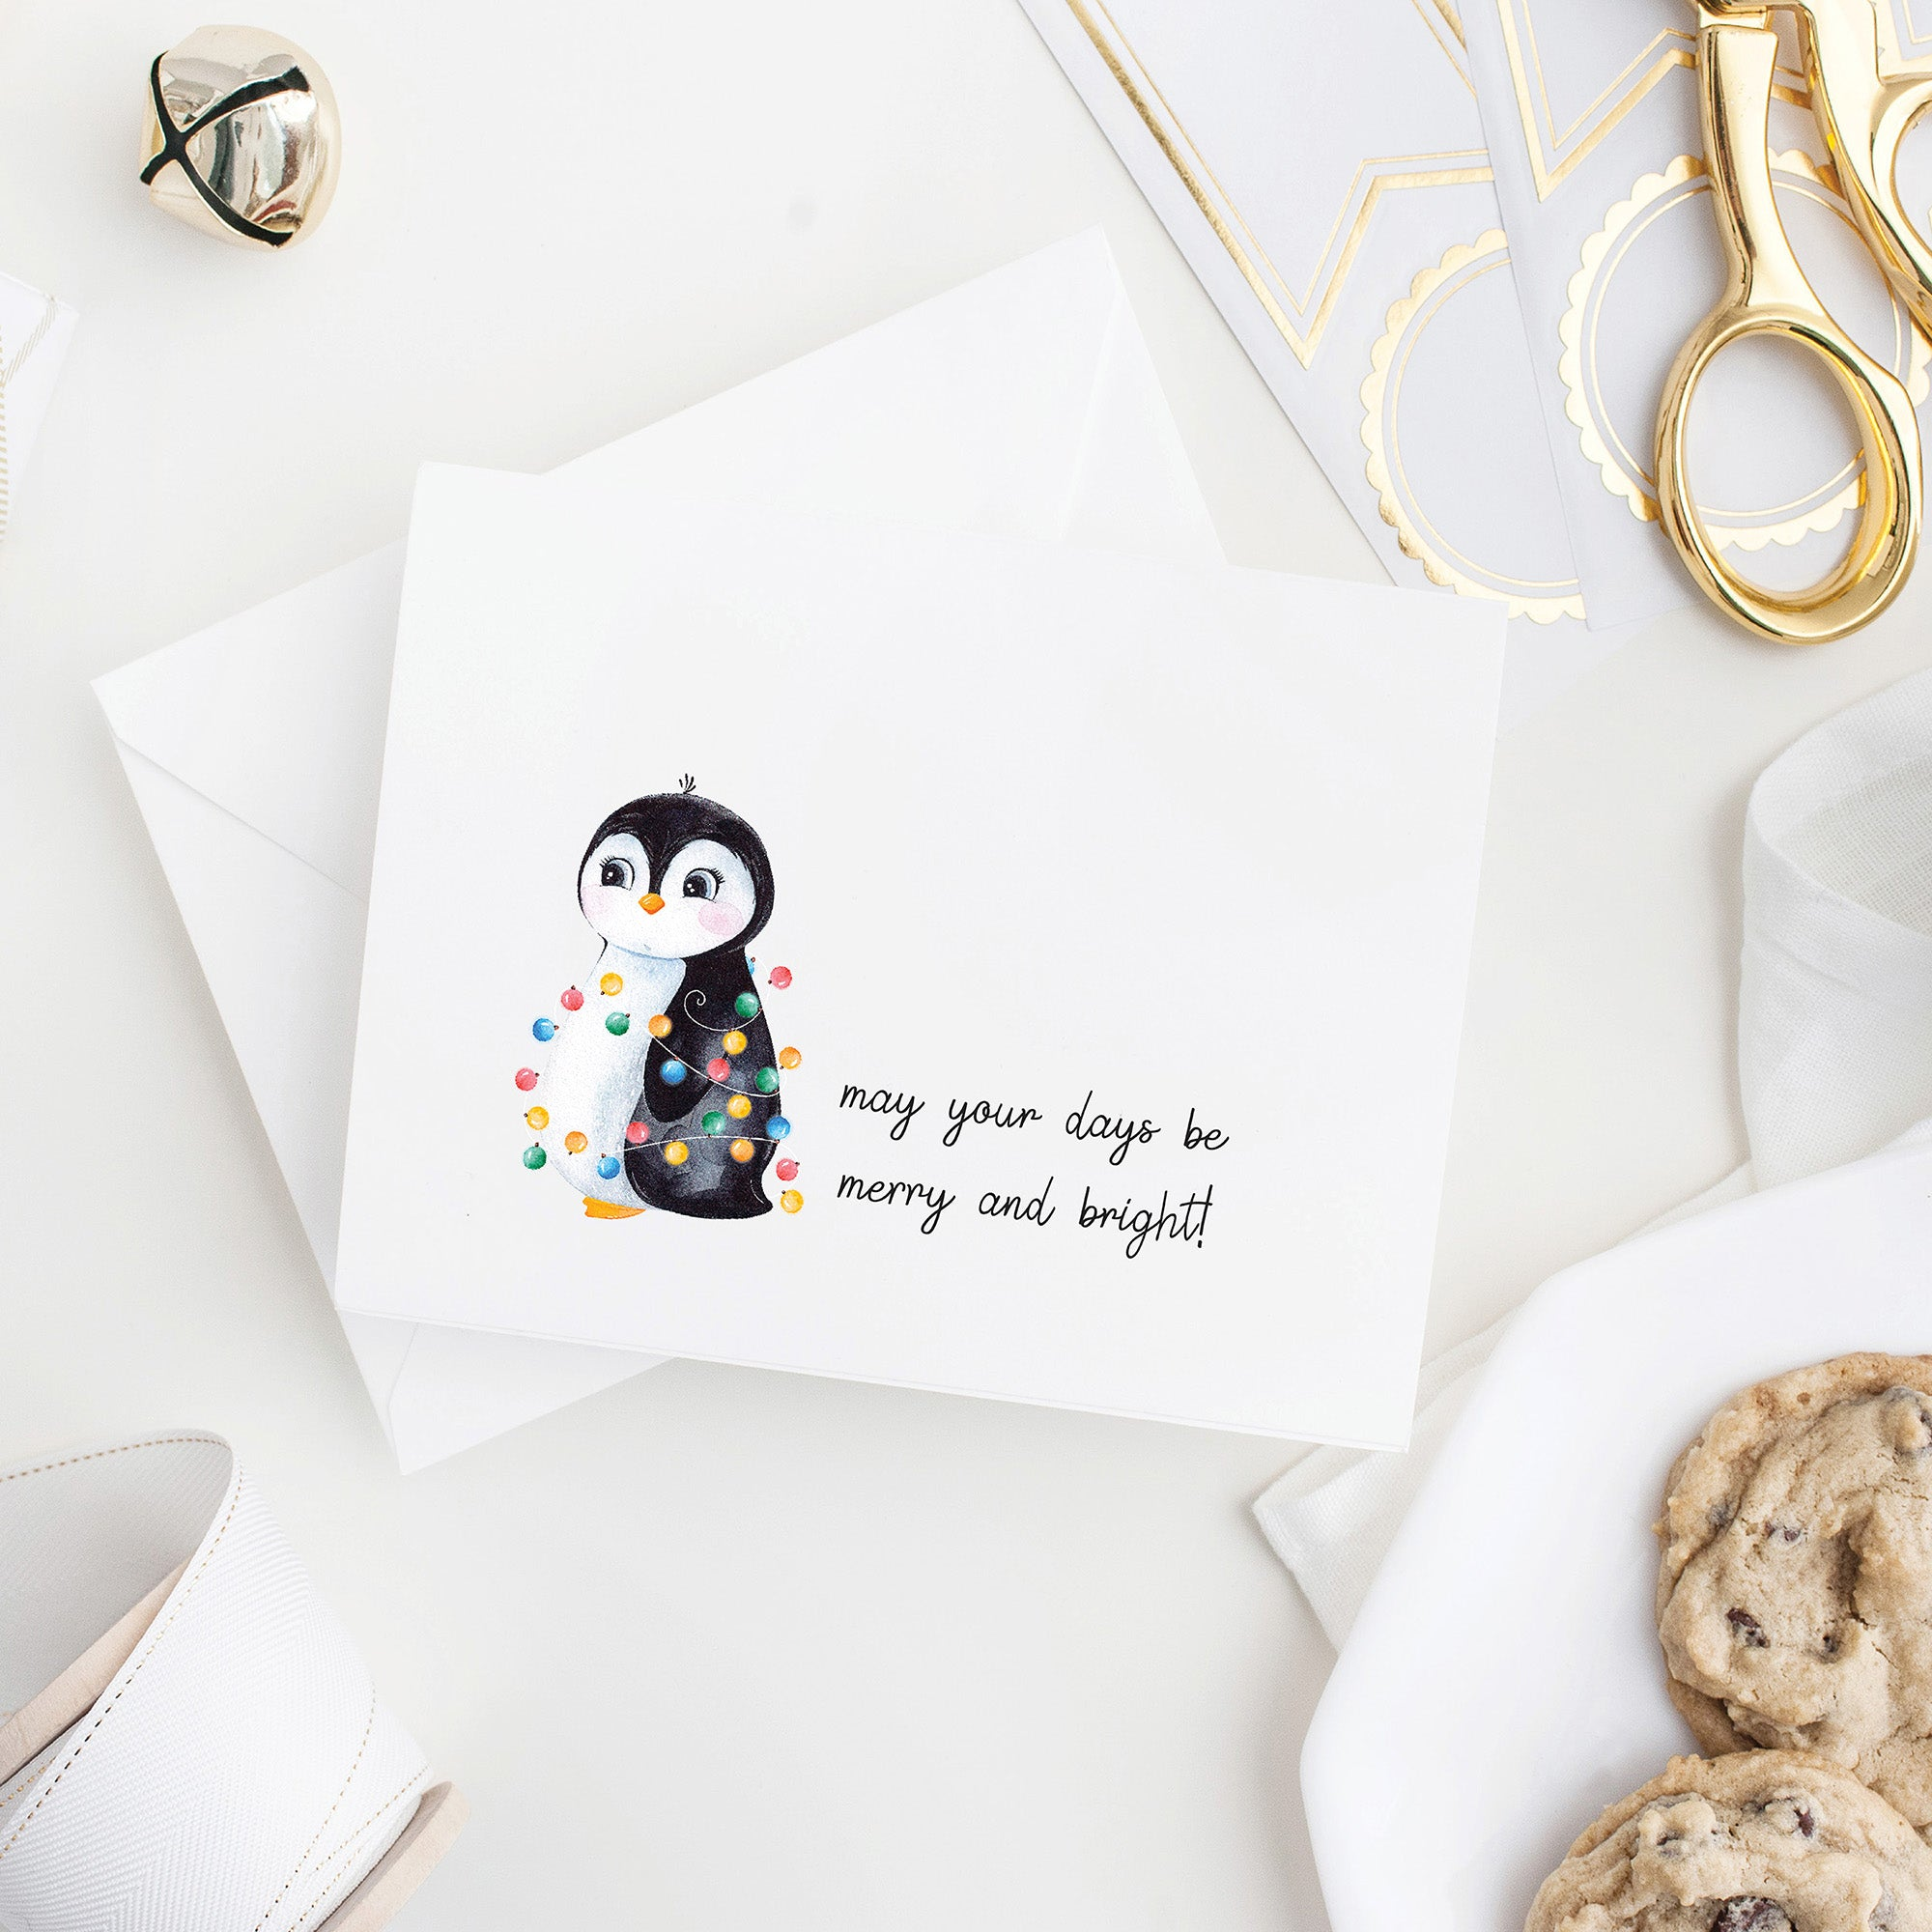 May your days be merry and bright holiday folded note card with watercolor penguin wrapped in string lights on a folded notecard with blank envelope